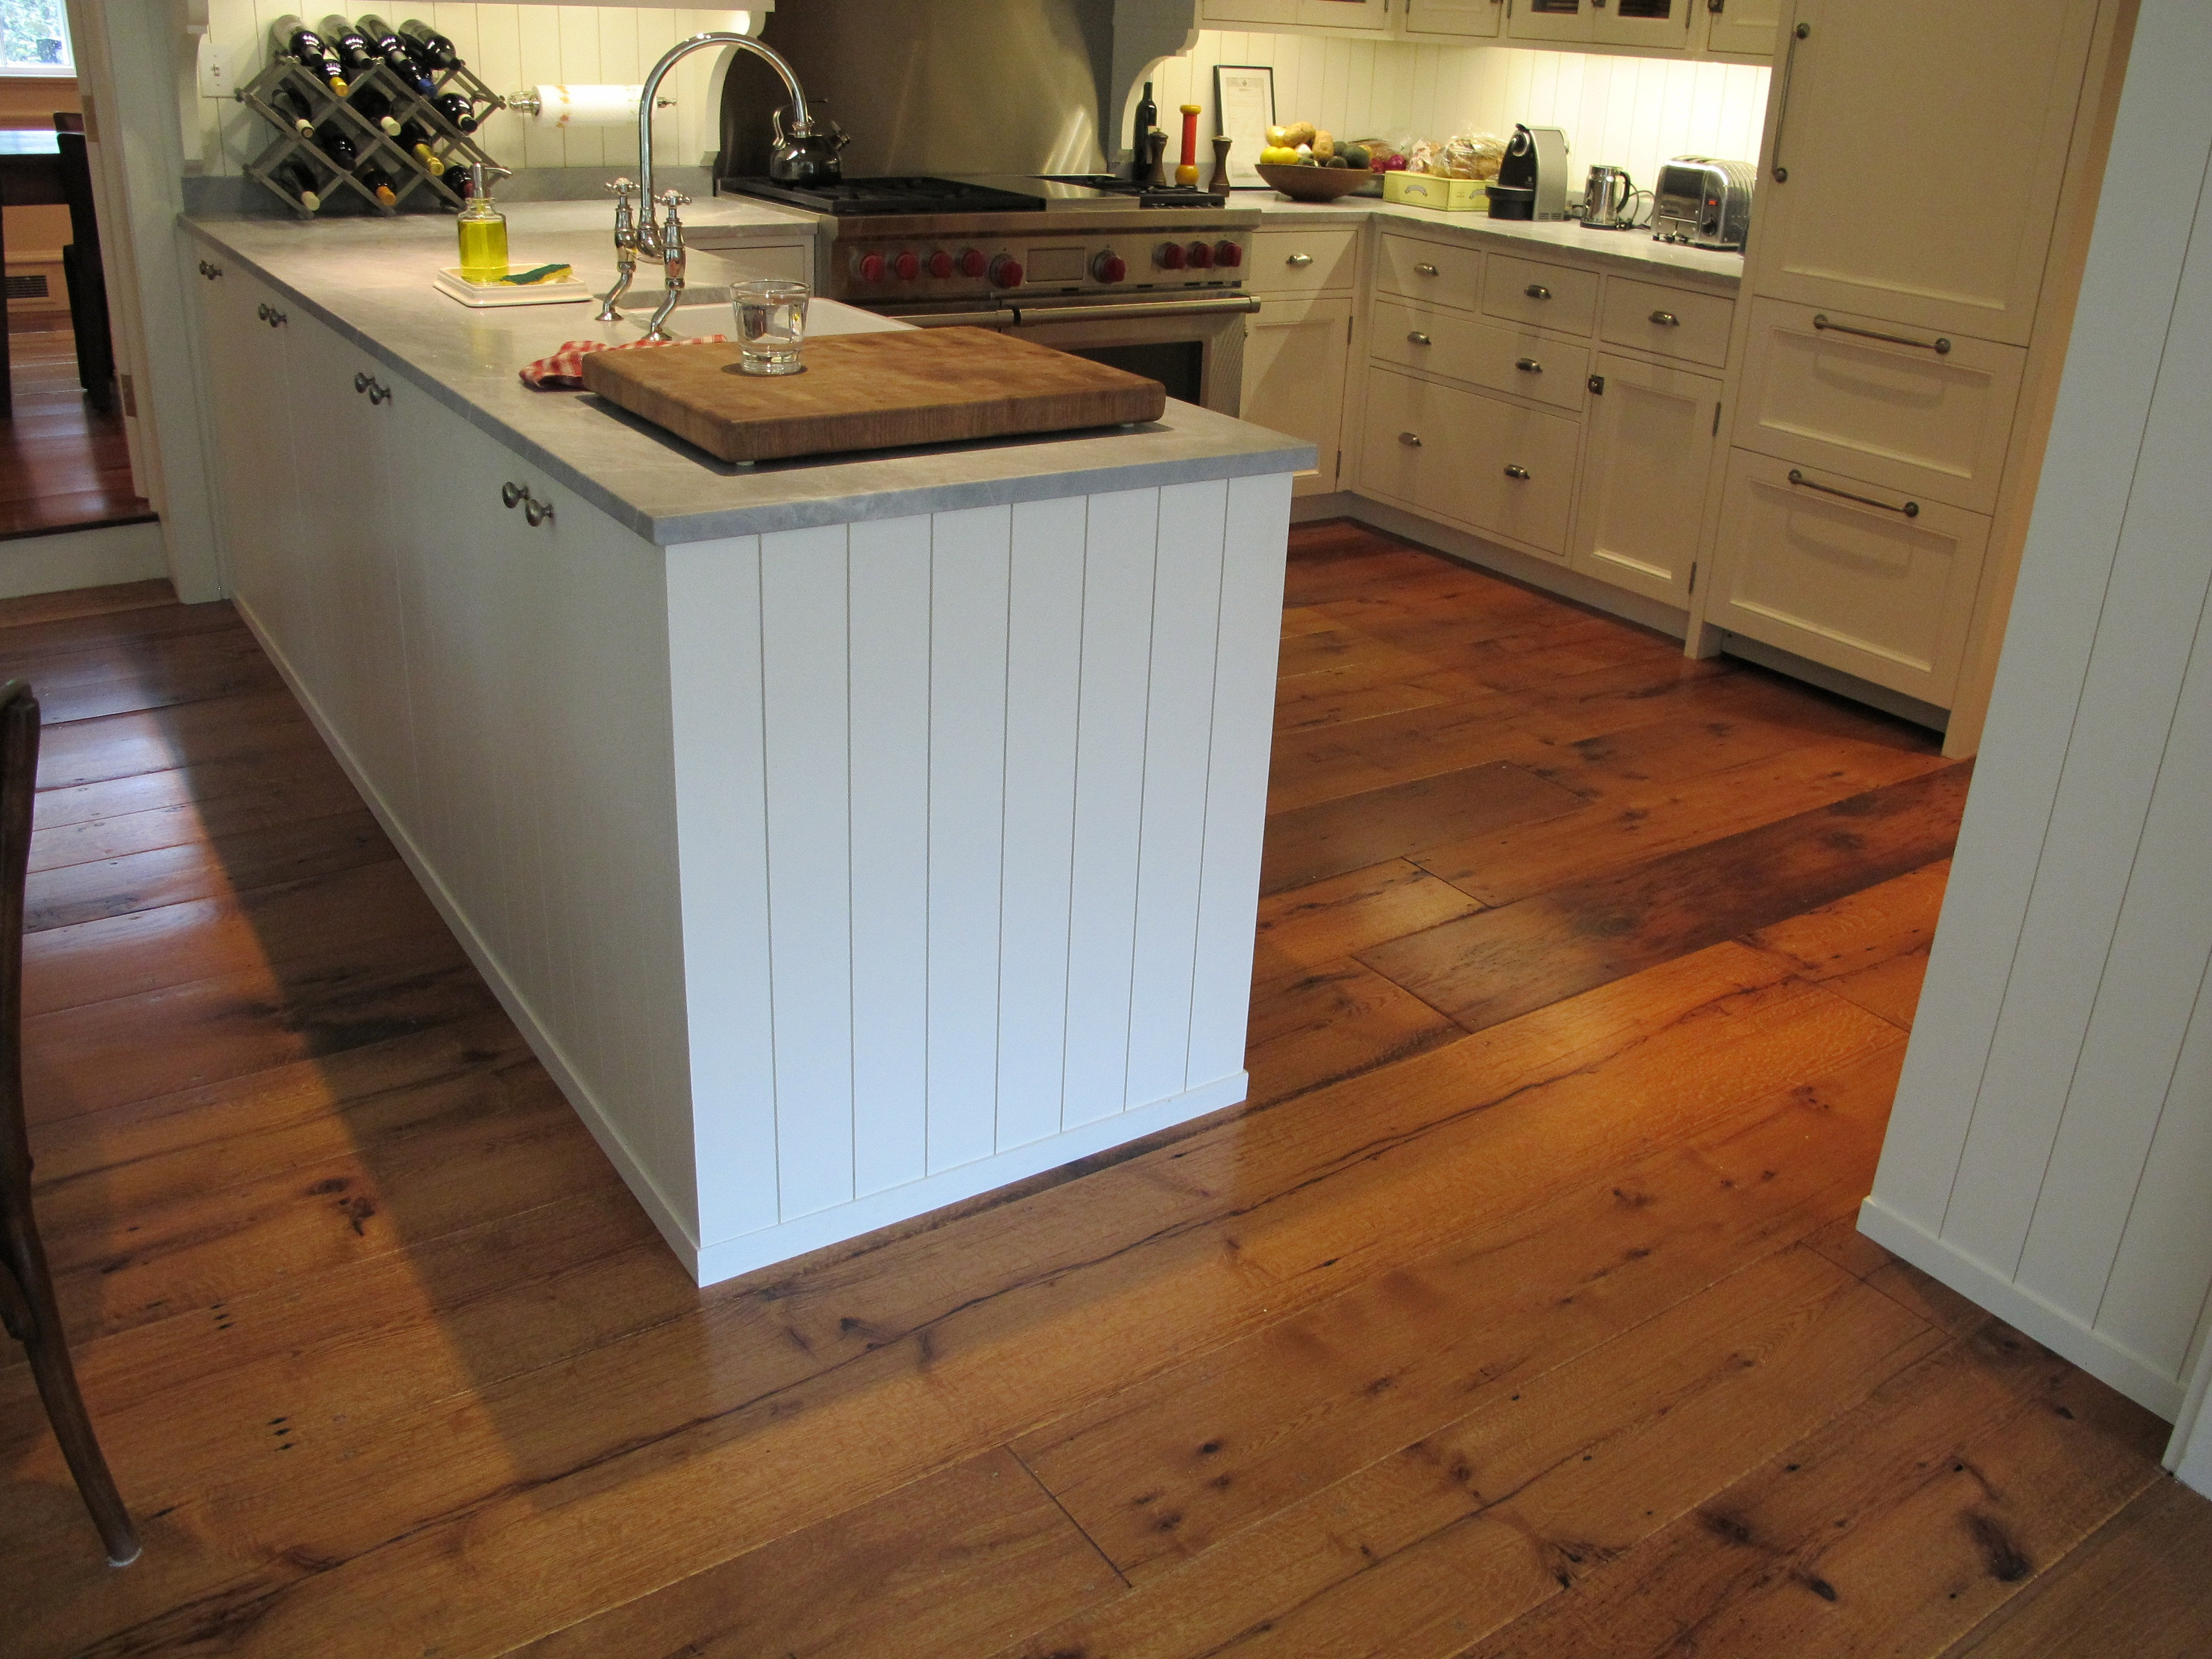 Chestnut Wood Working and Antique Flooring | kitchen pic